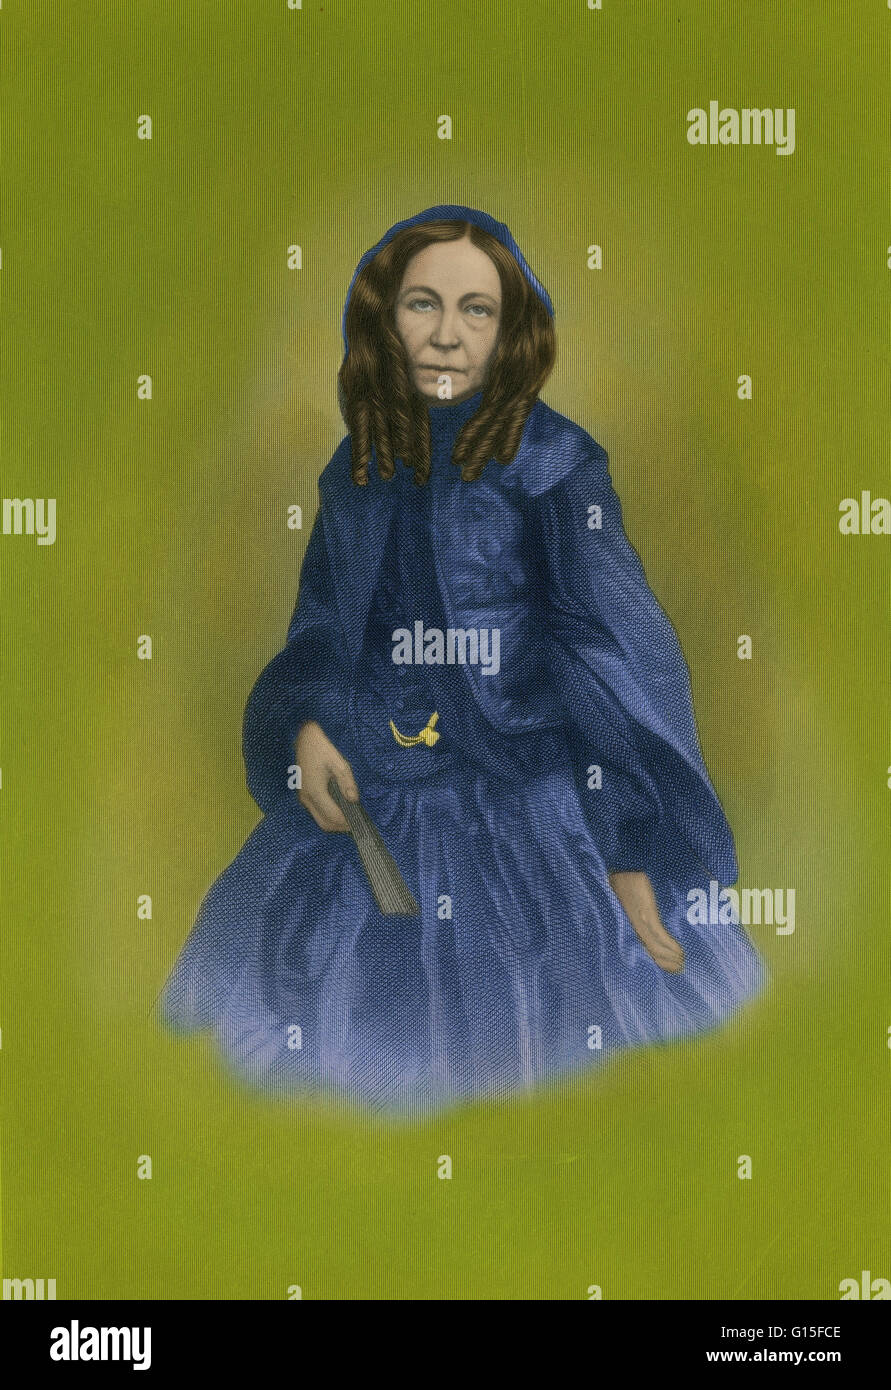 Elizabeth Barrett Browning (March 6, 1806 - June 29, 1861) was one of the most prominent English poets of the Victorian - Stock Image